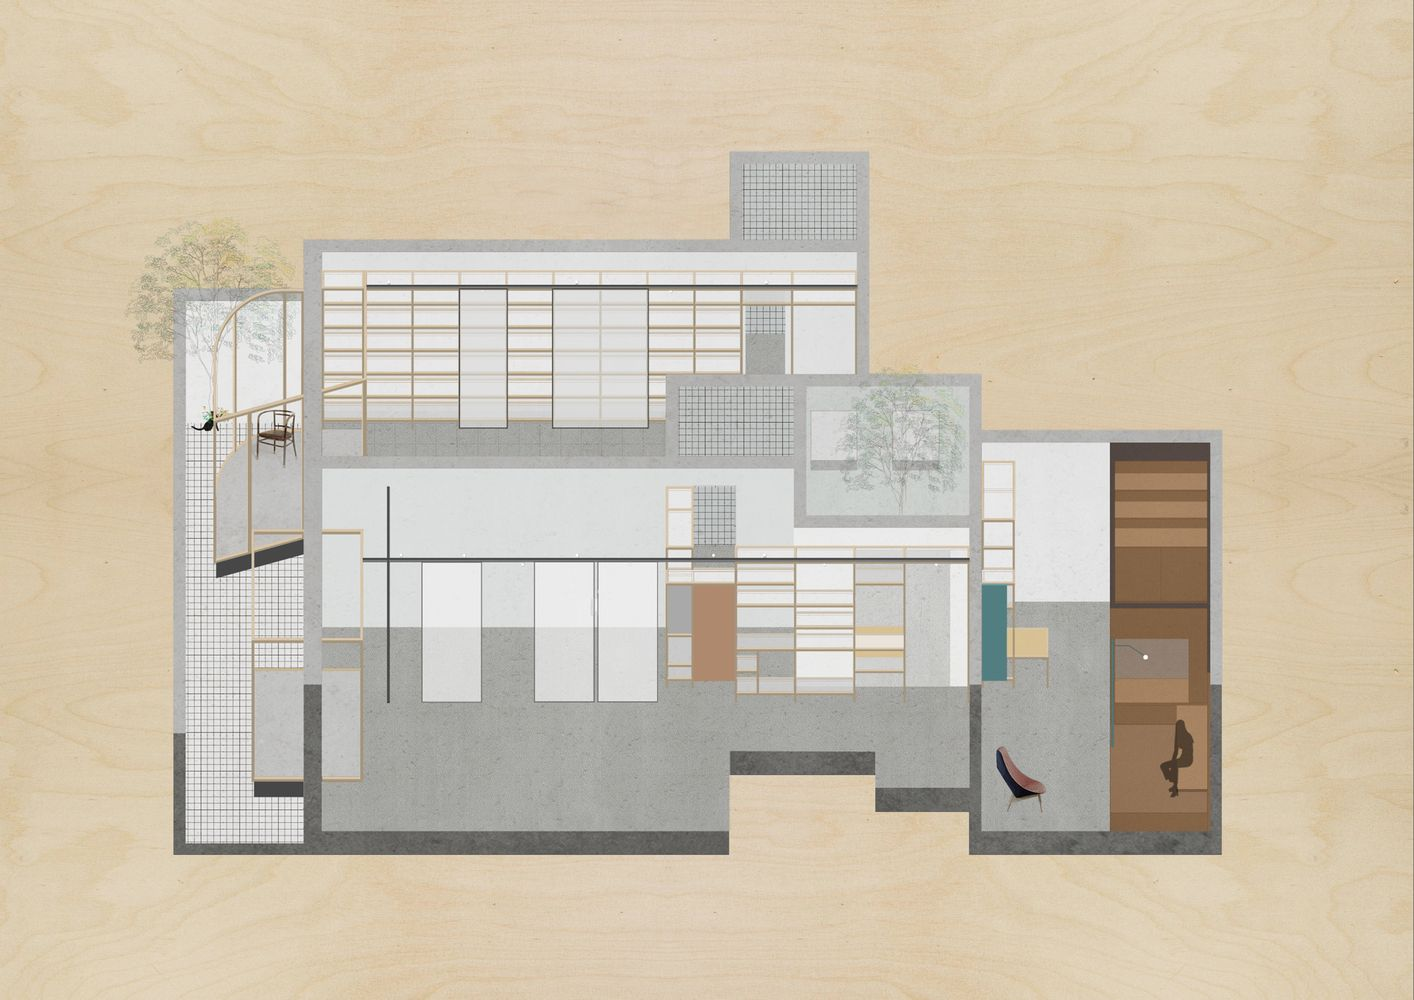 Gallery of architect   studio atelier tao  also best architectural drawings images rh pinterest